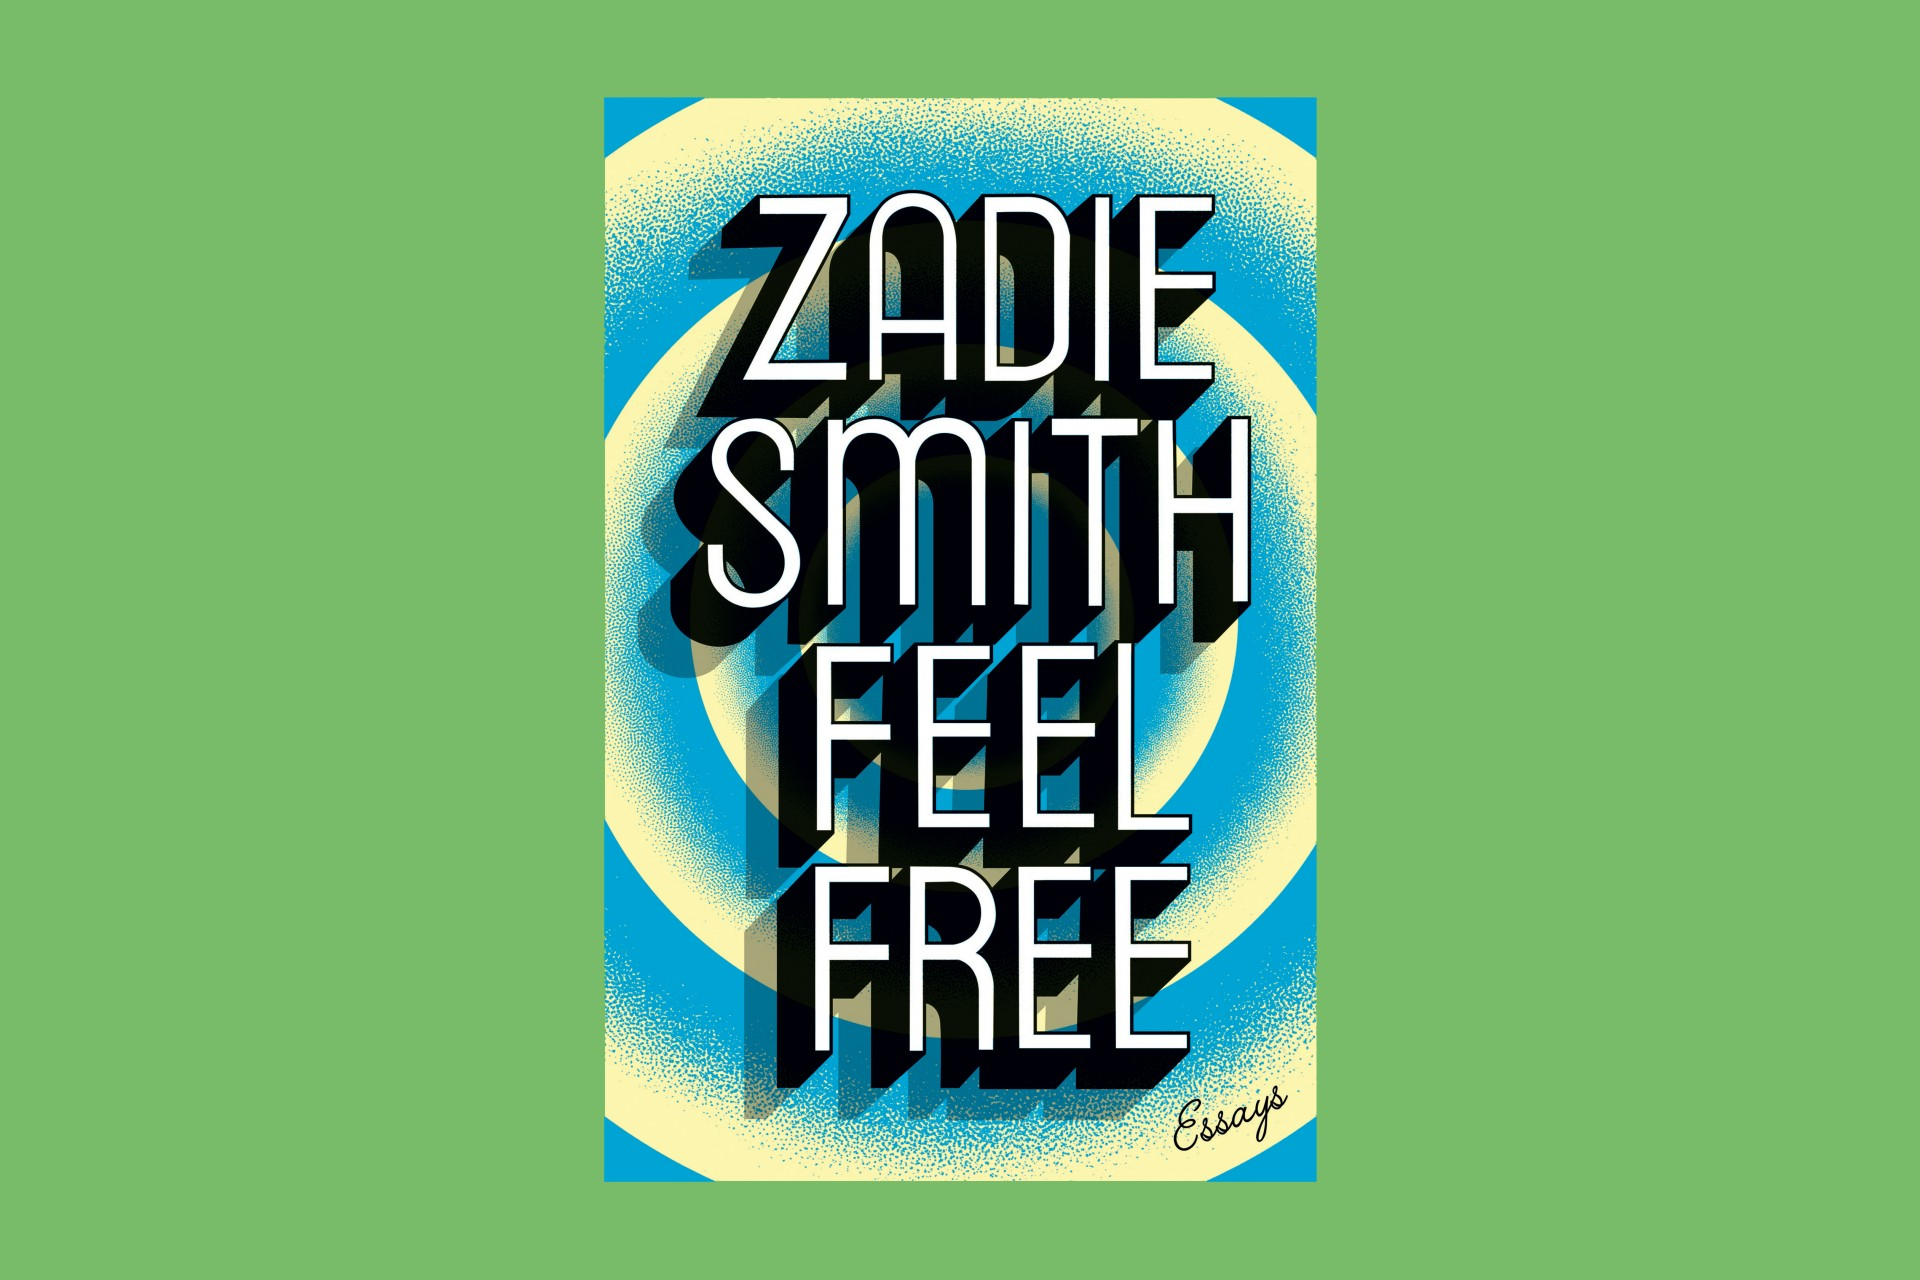 004 Zadie Smith Essays Feel Free Essay Wonderful Amazon Radio 4 1920